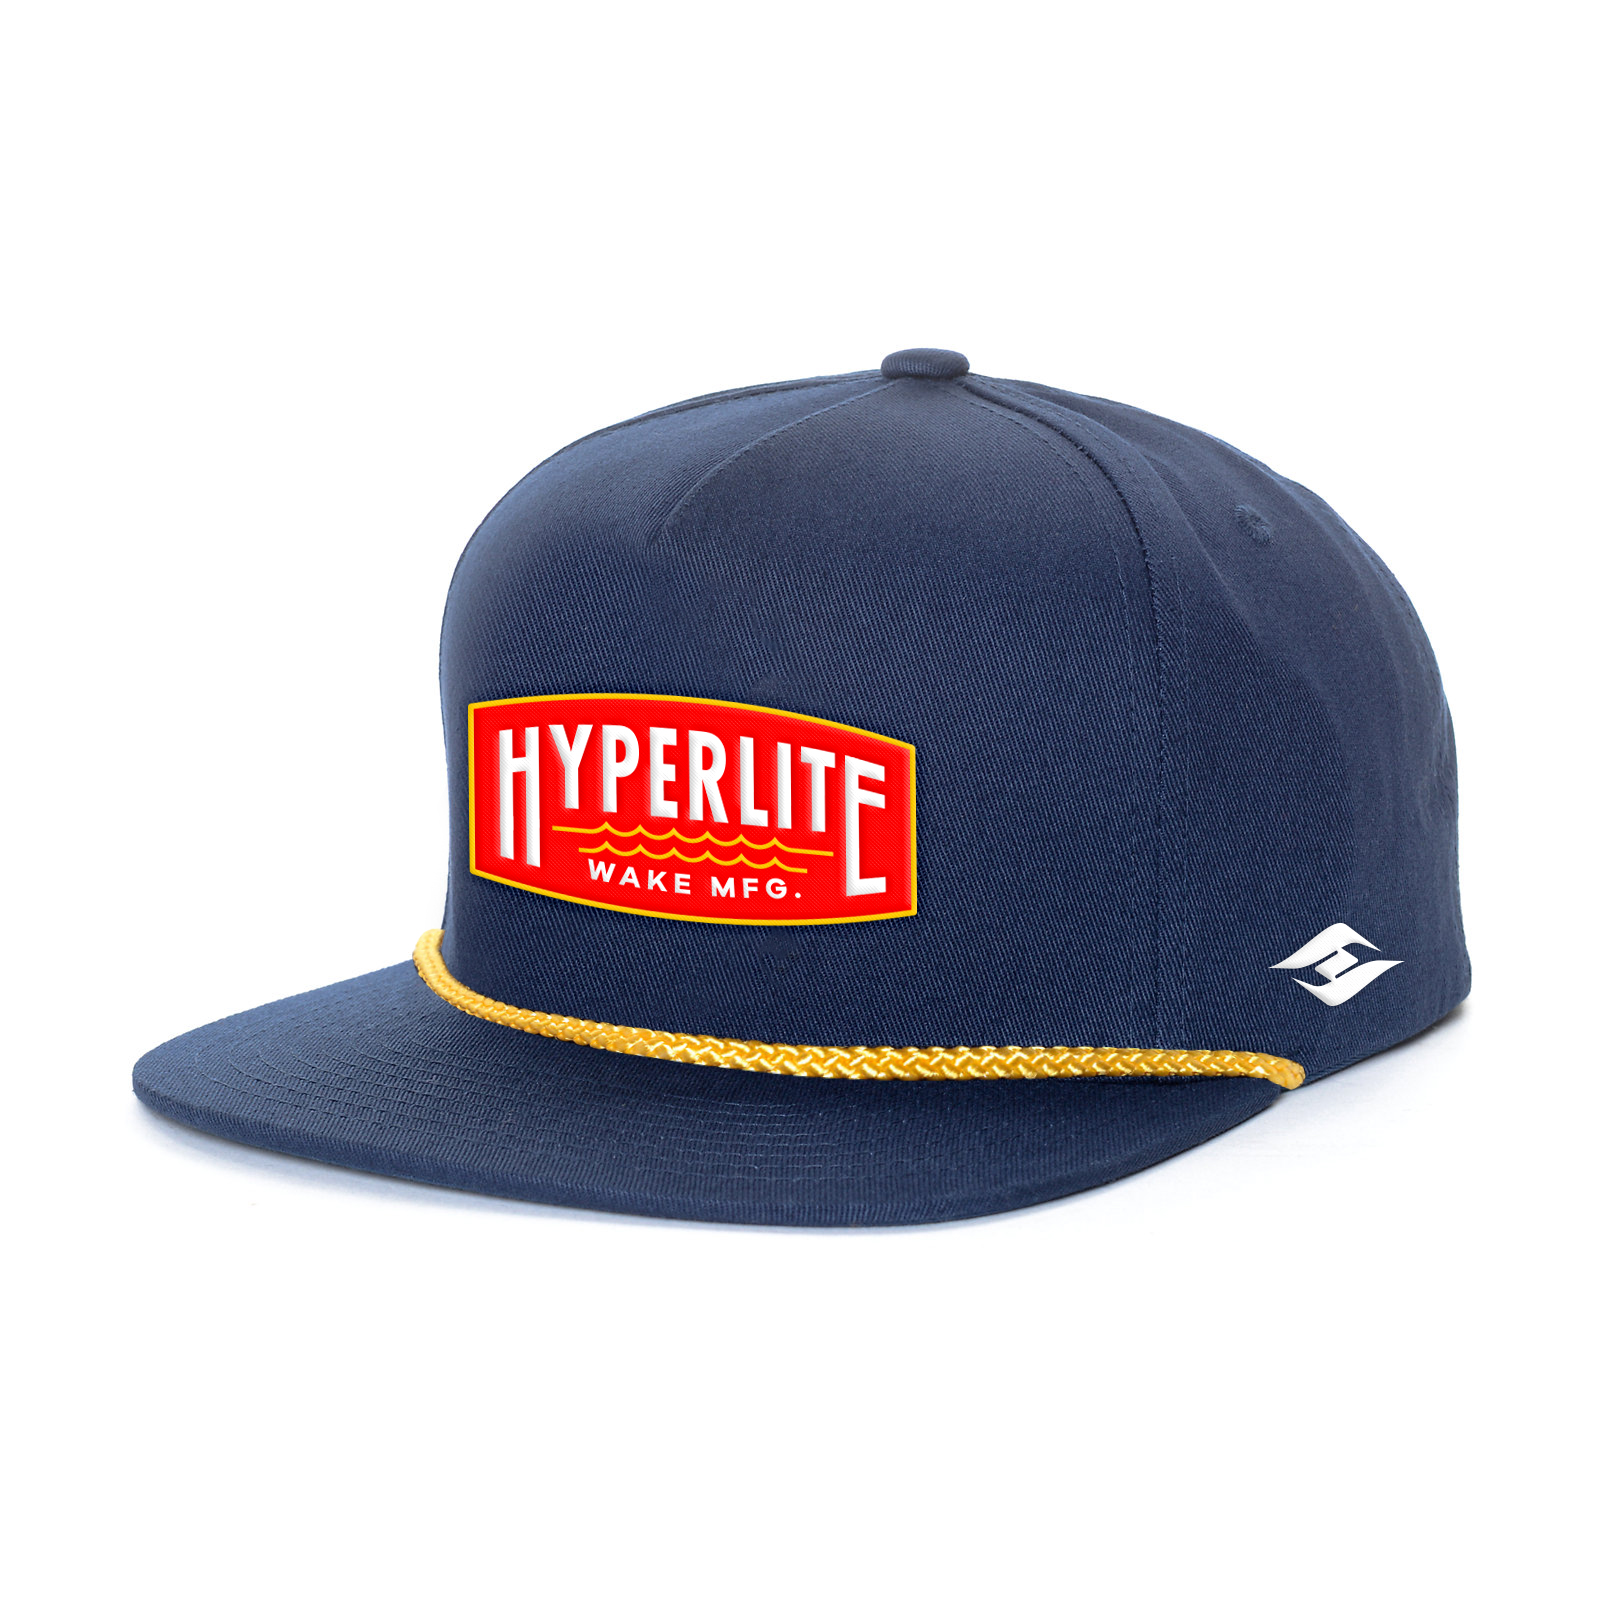 RESIN SNAPBACK HAT OSFA HYPERLITE 2018